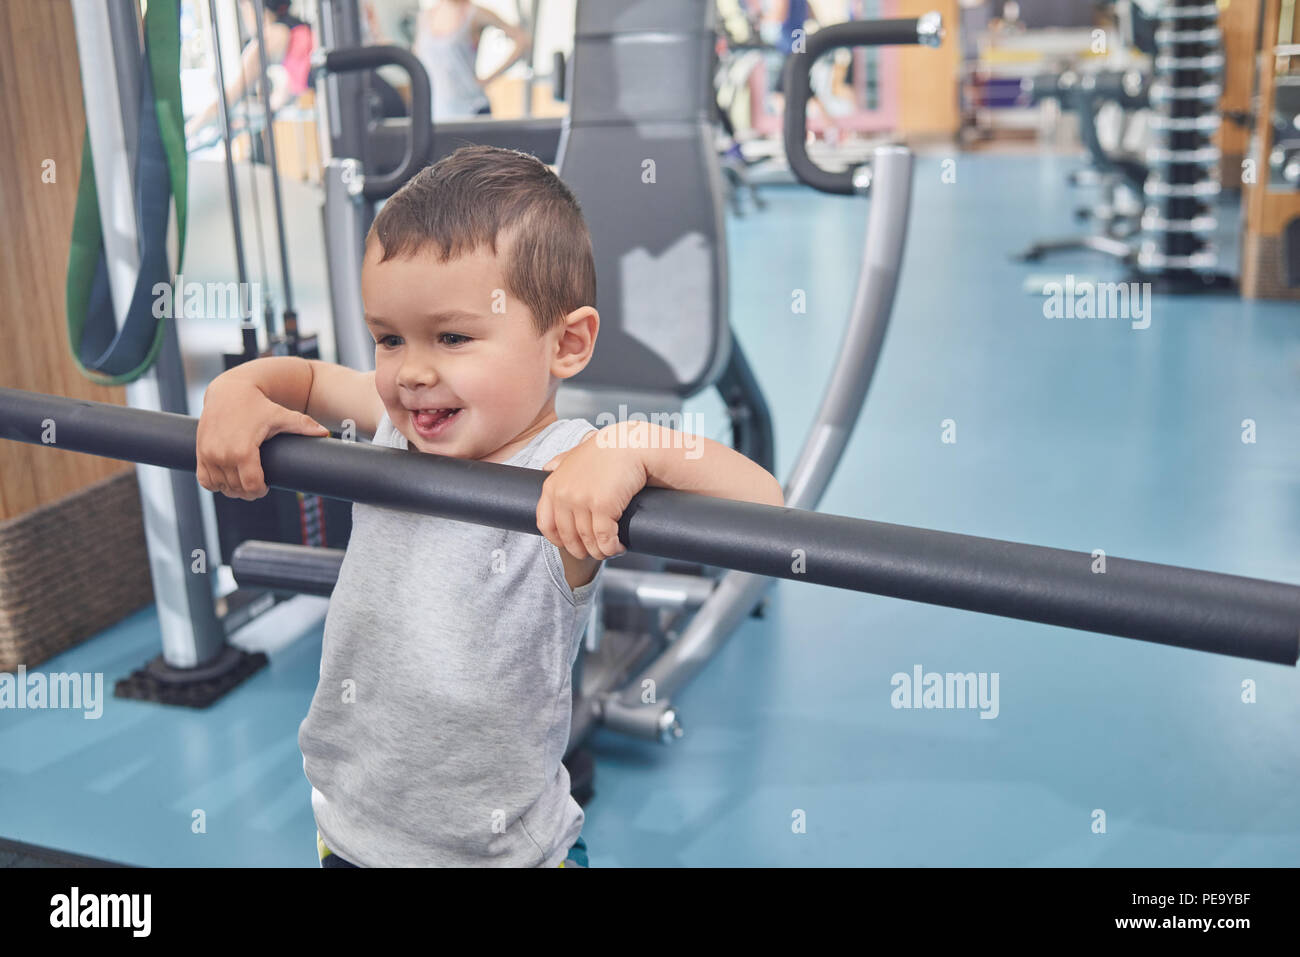 Little cute boy grimacing, holding on metallic crossbar in gym. Child laughing, smiling, looking cute, happy, satisfied. Heavy simulators standing behind. Keeping healthy lifestyle. - Stock Image